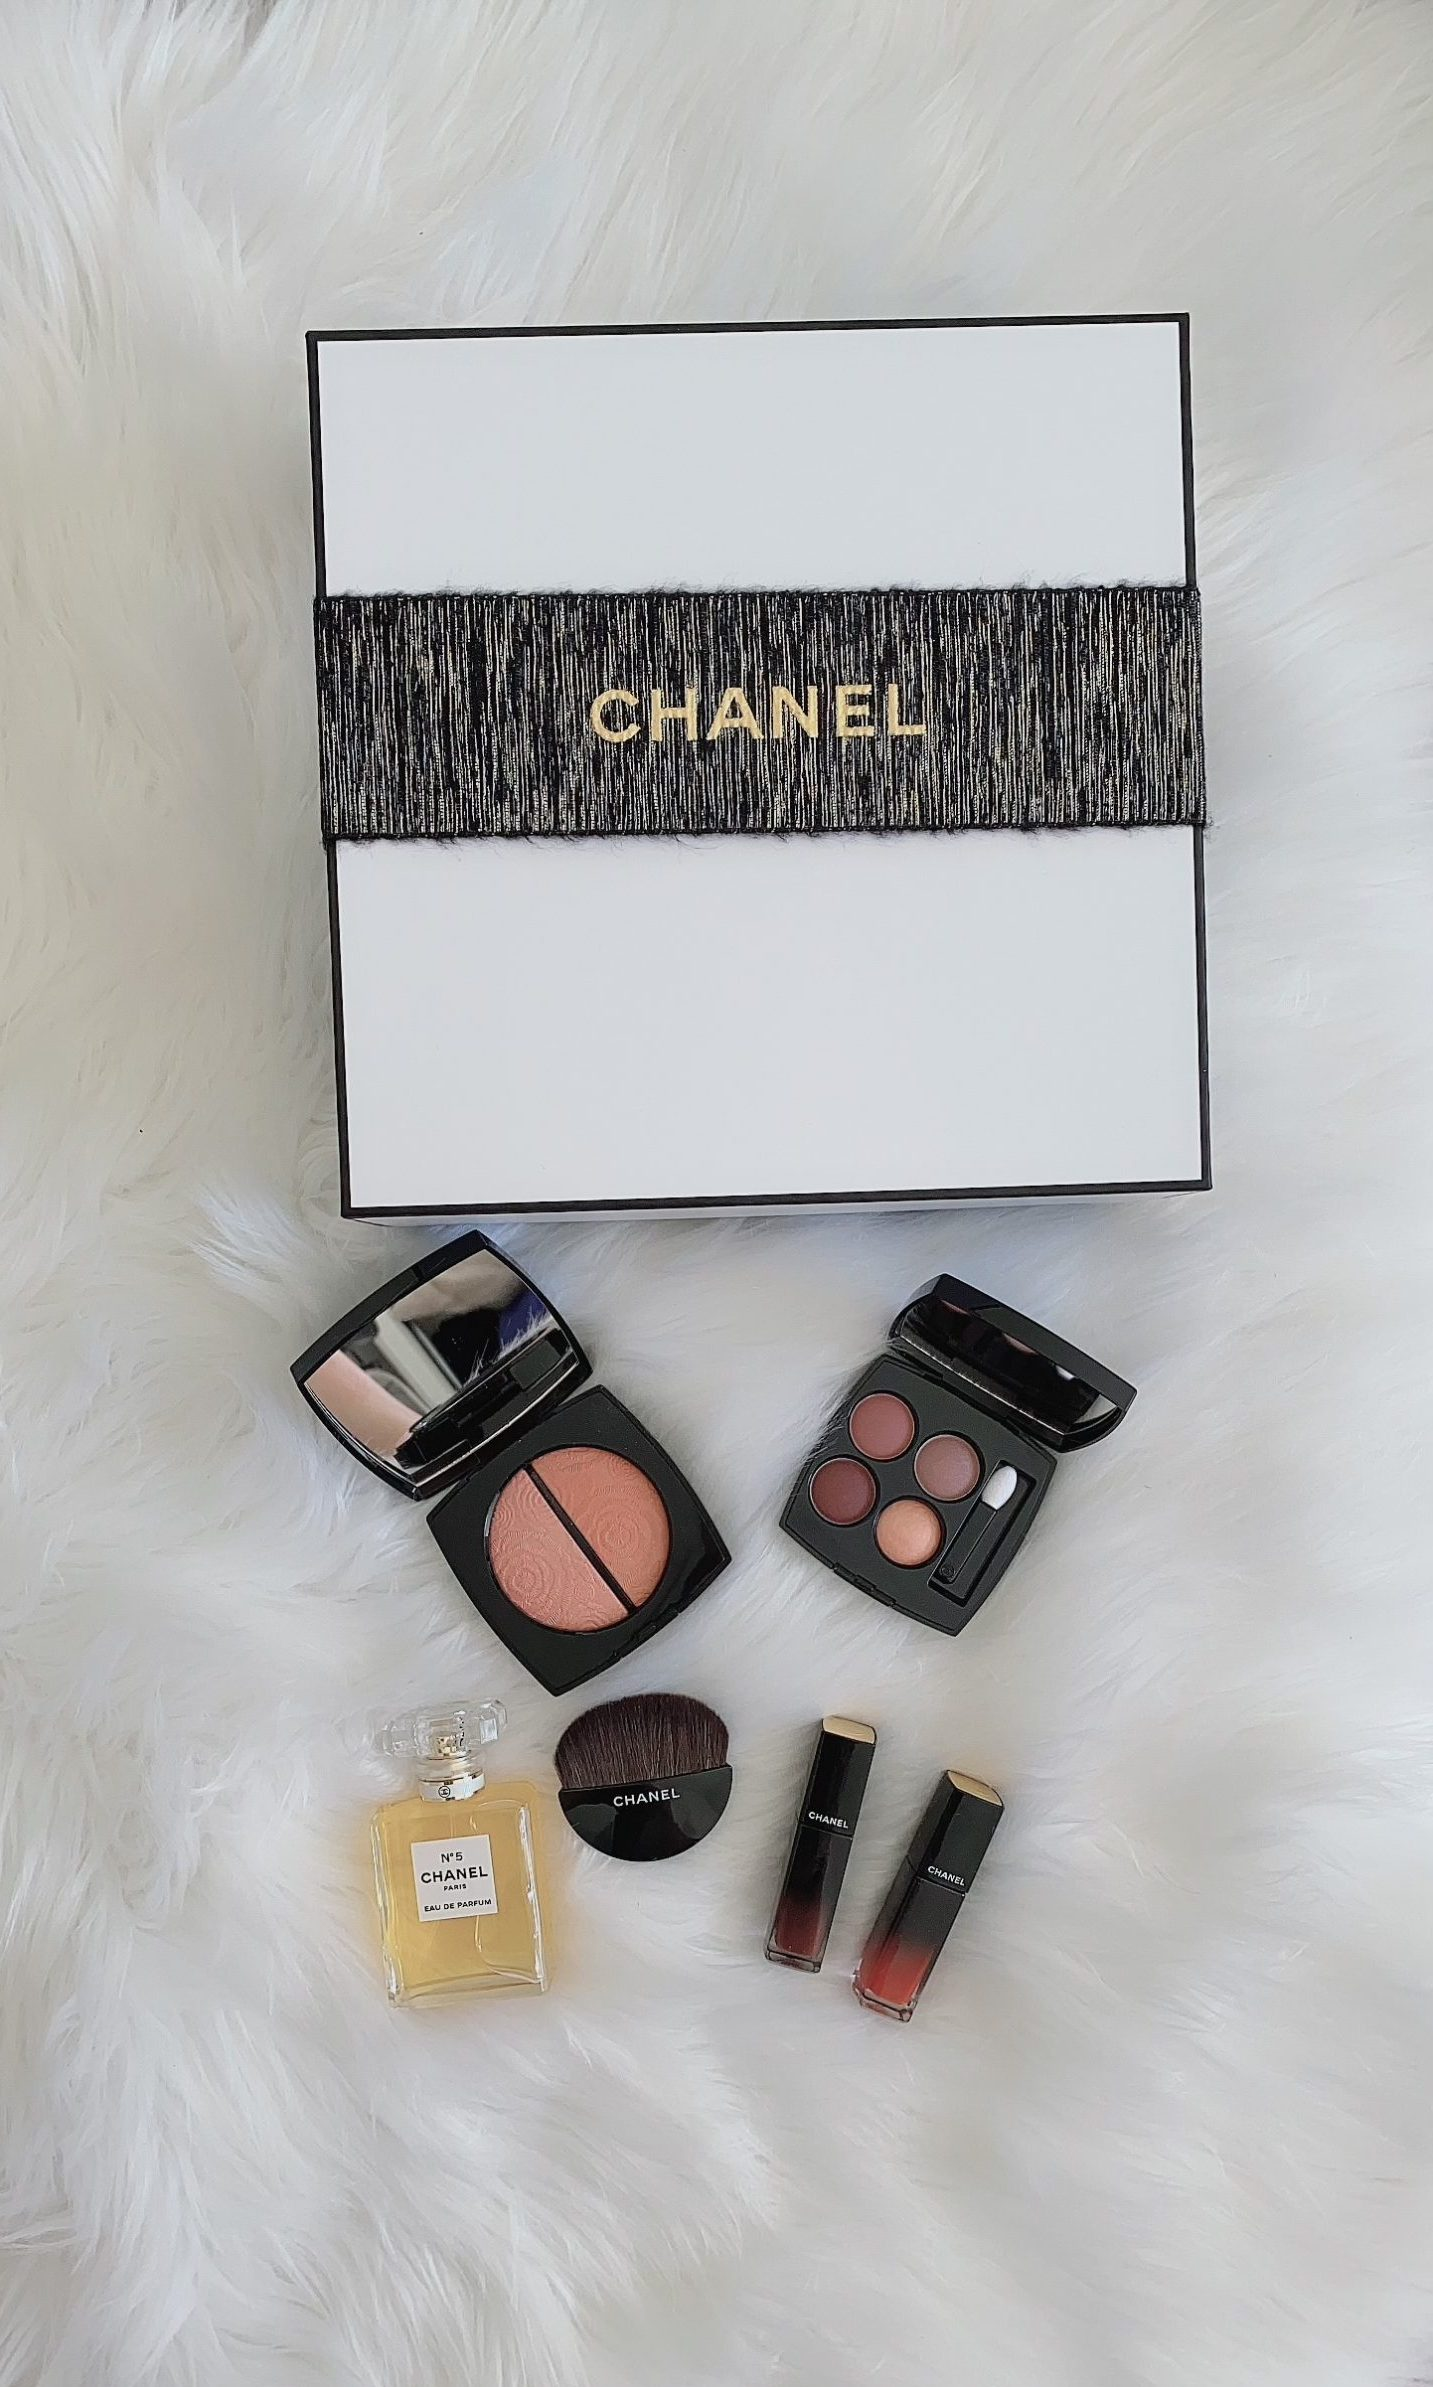 Chanel Spring 2021-2022 | With Love, Vienna Lyn